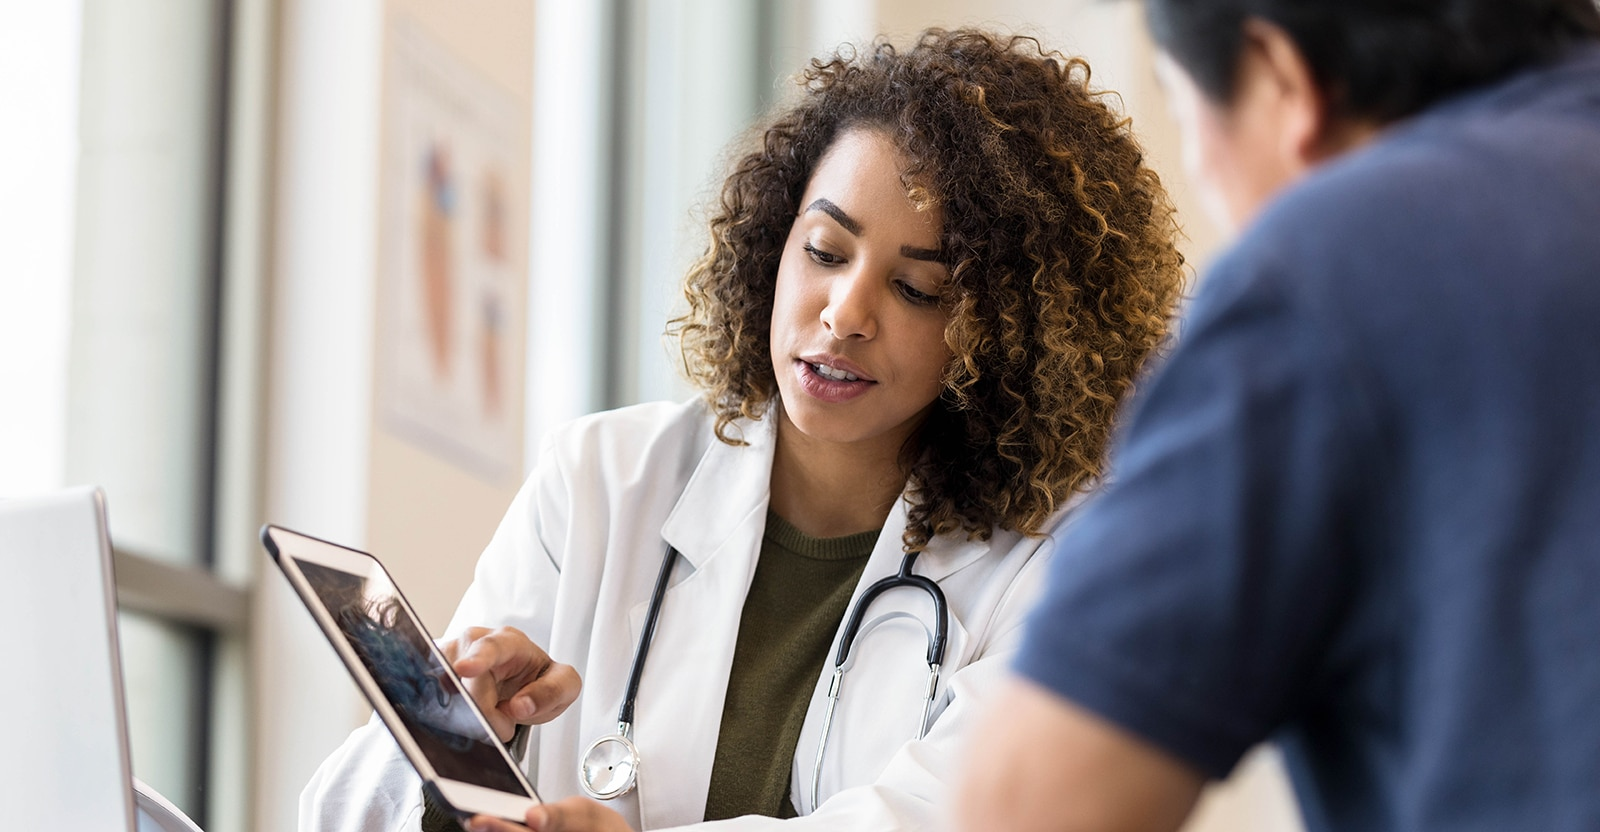 Female Doctor consulting with male patient over iPad